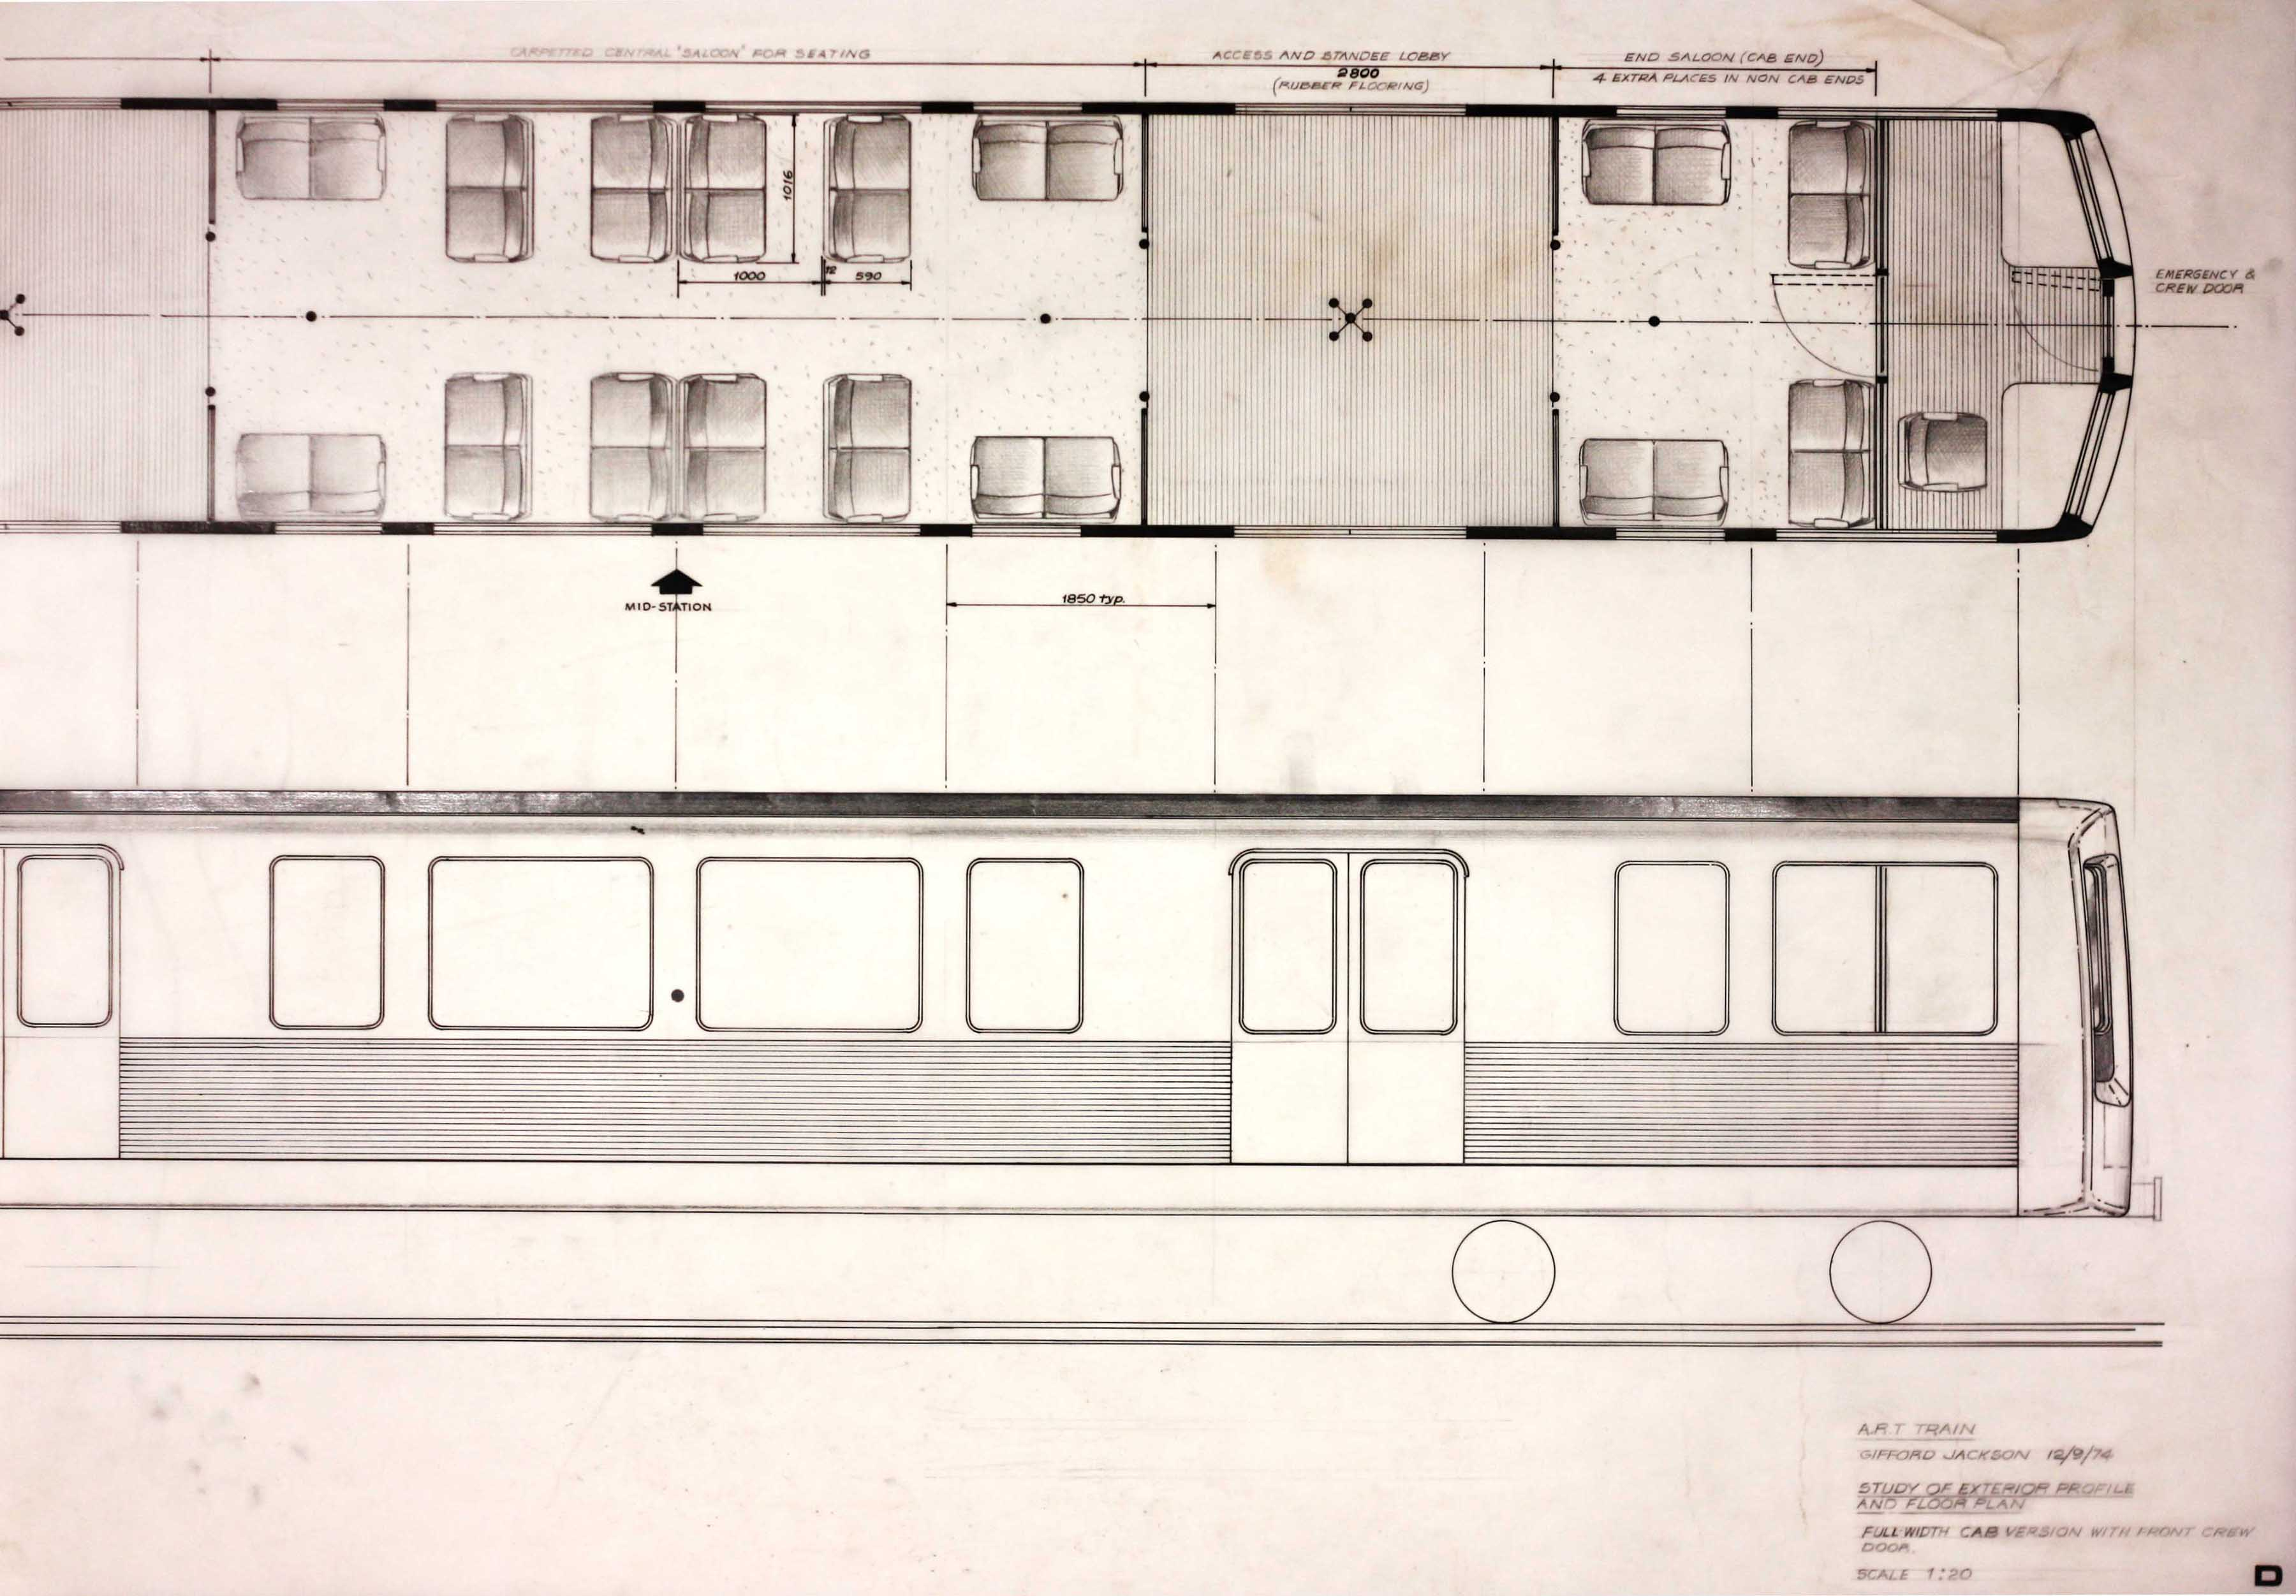 A sketch plain showing the side and floor of a train